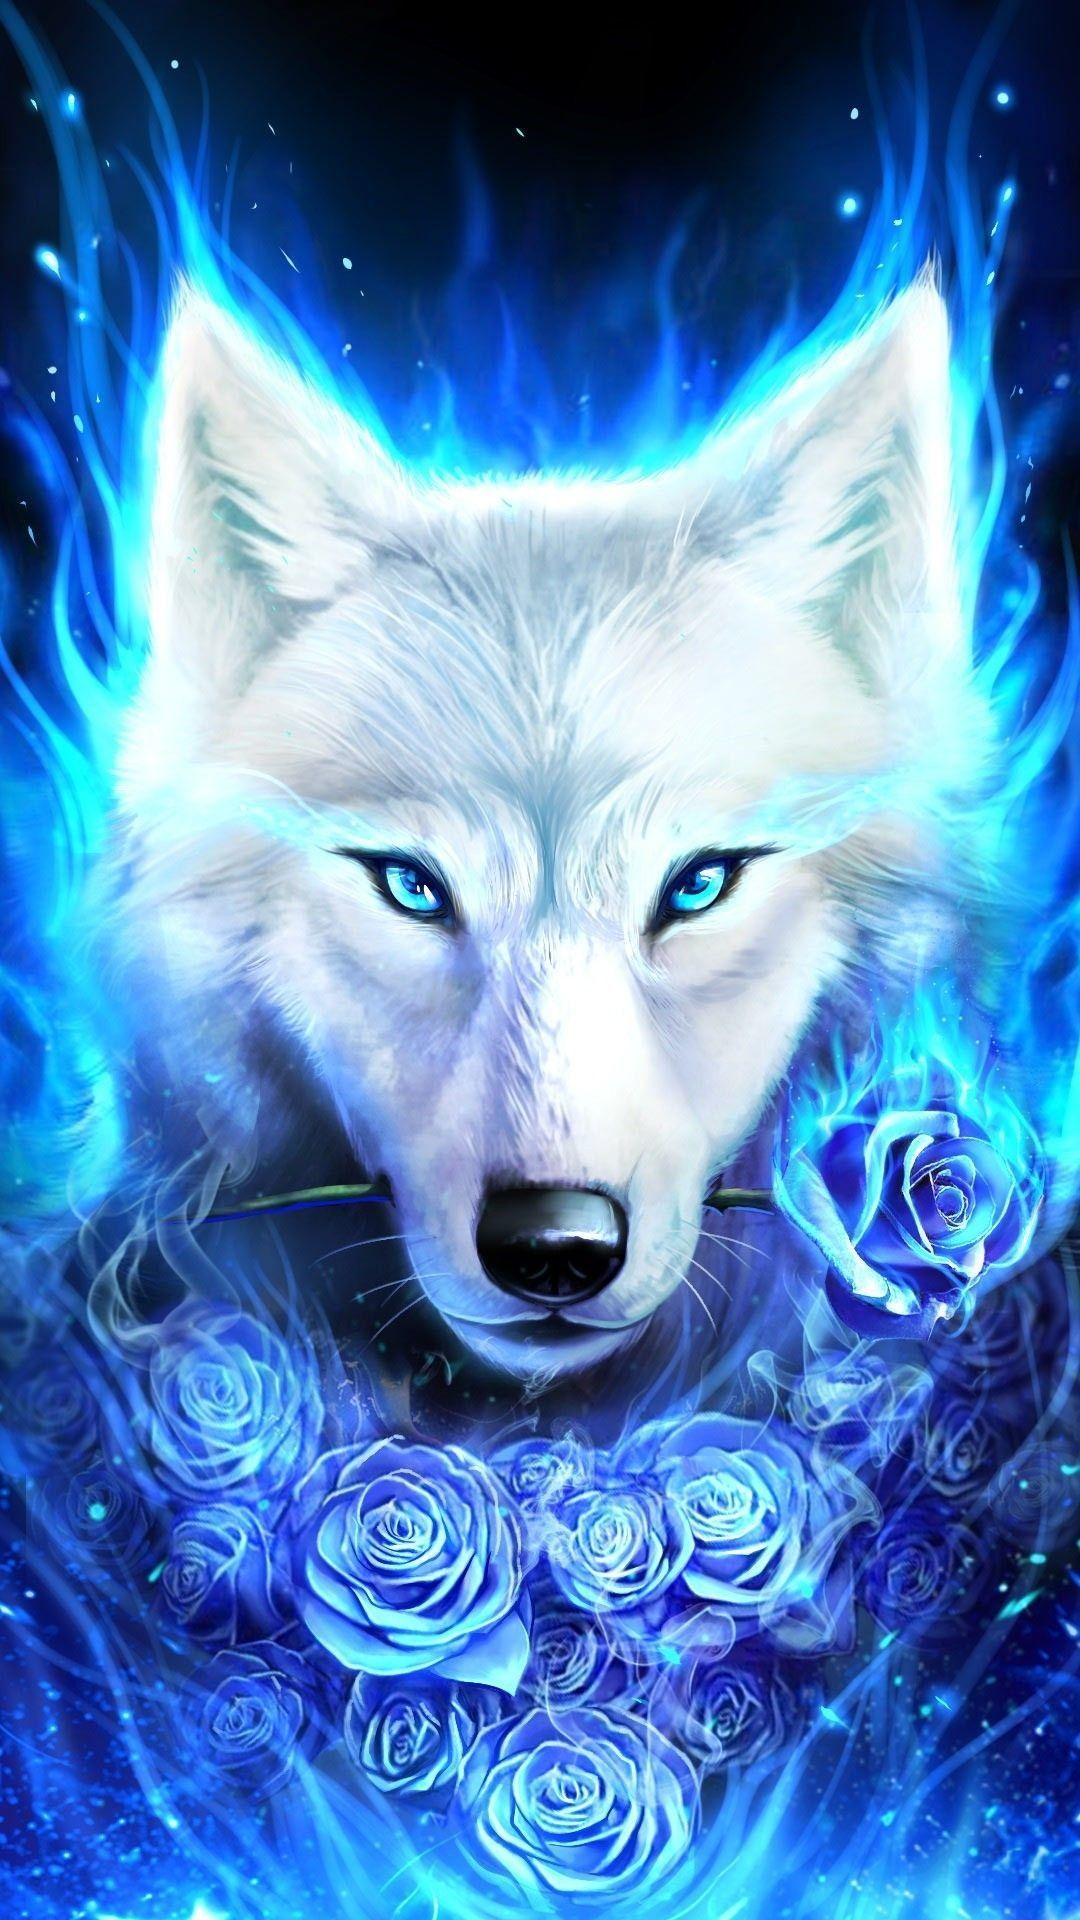 68 Ice Wolf Wallpapers On Wallpaperplay In 2020 Ice Wolf Wallpaper Wolf Spirit Animal Wolf Artwork